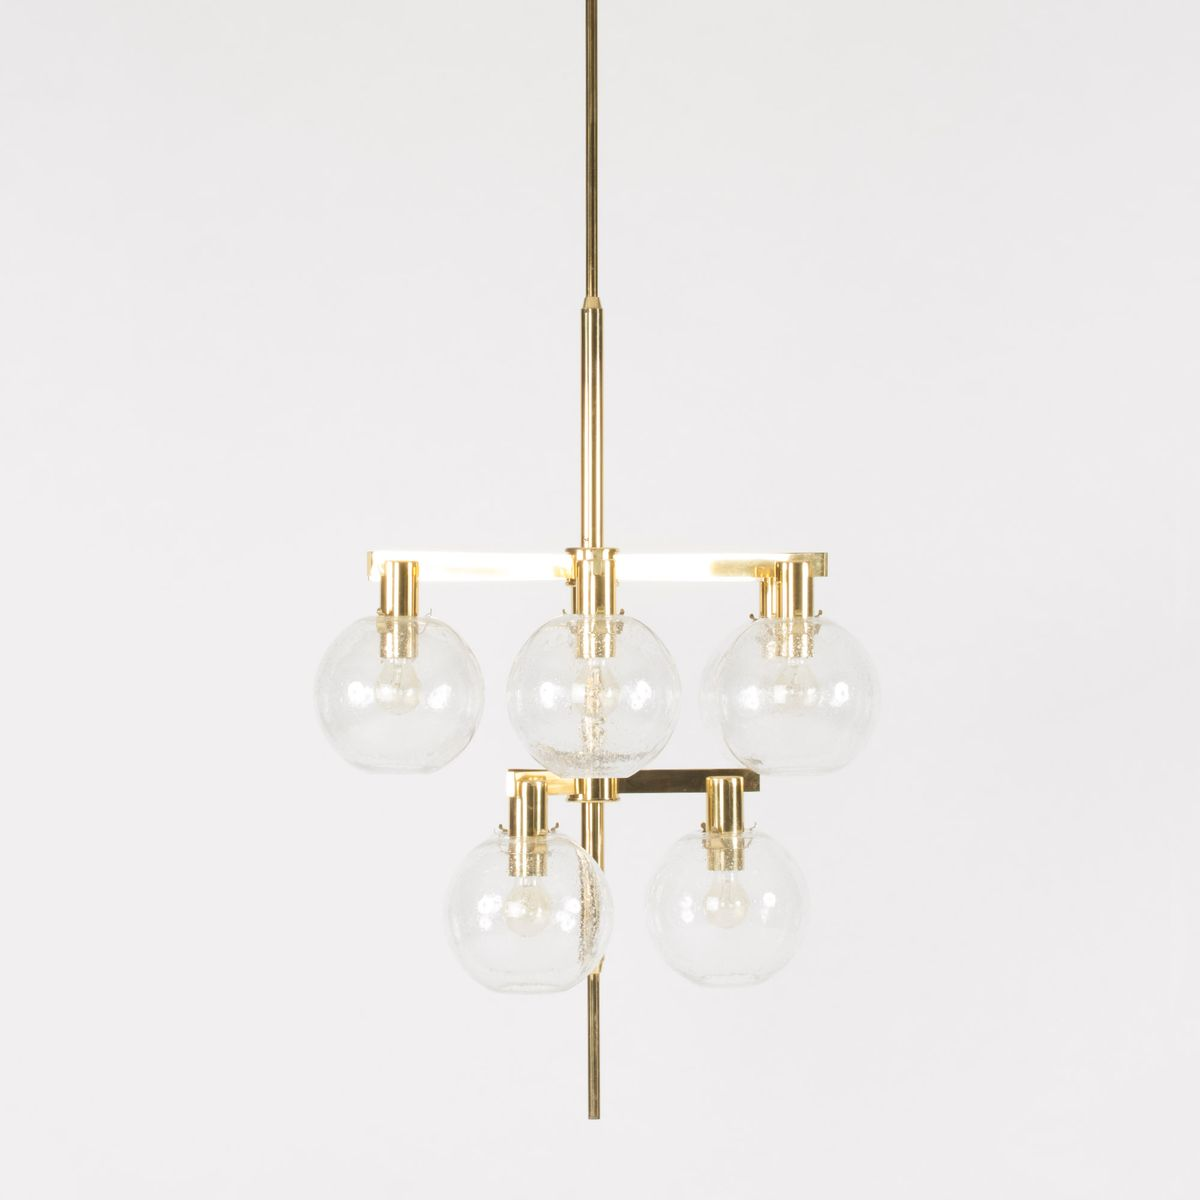 Brass and glass chandelier from hans agne jakobsson 1960s for brass and glass chandelier from hans agne jakobsson 1960s arubaitofo Images